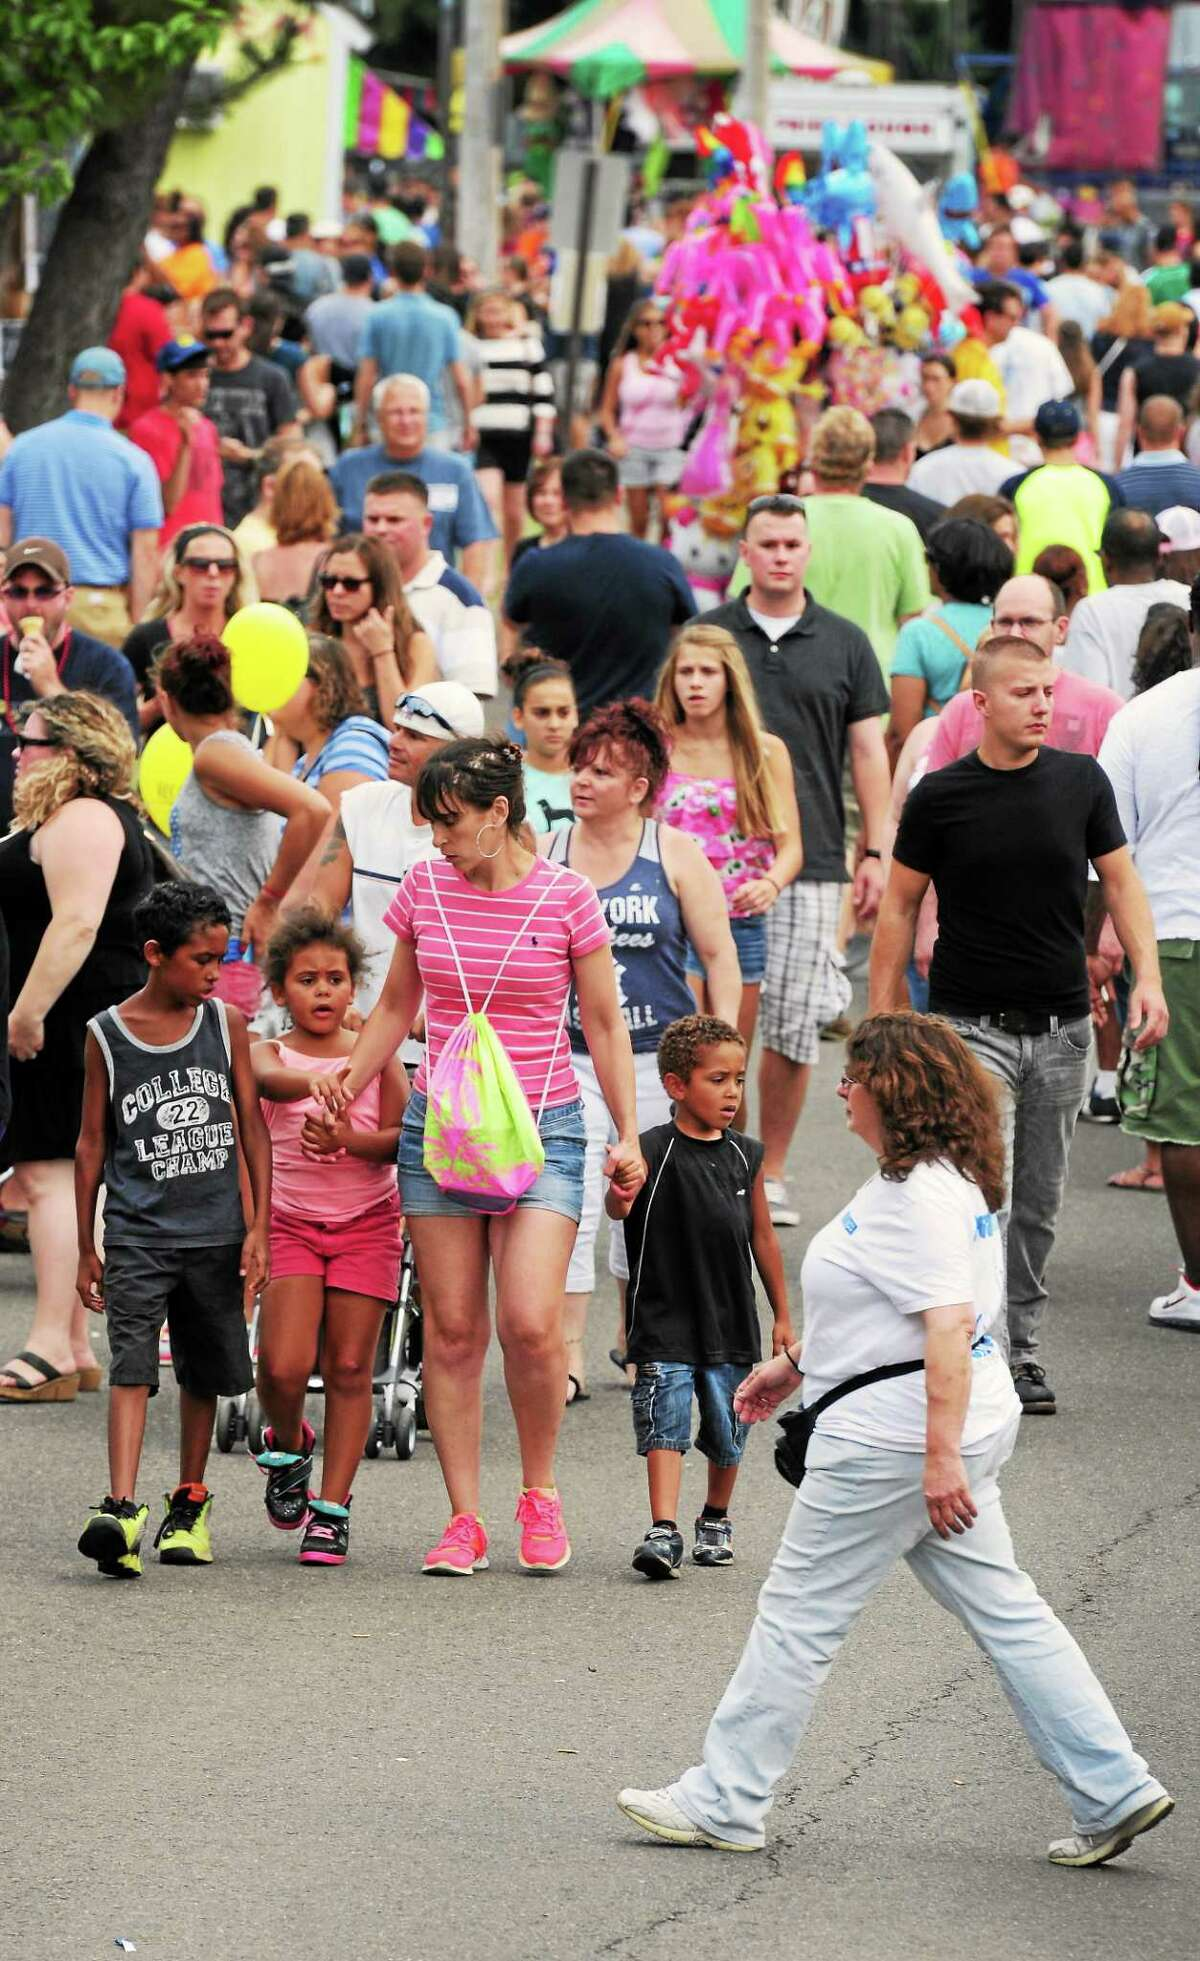 Milford Oyster Festival in Milford, Connecticut Saturday, August 16, 2014 that includes music group featuring Bret Michaels on the main stage.